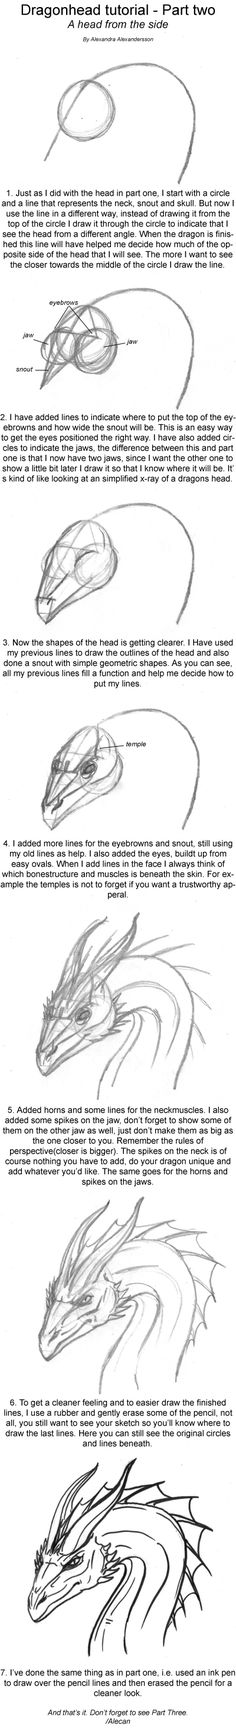 Dragonhead Tutorial part two by alecan.deviantart.com on @deviantART